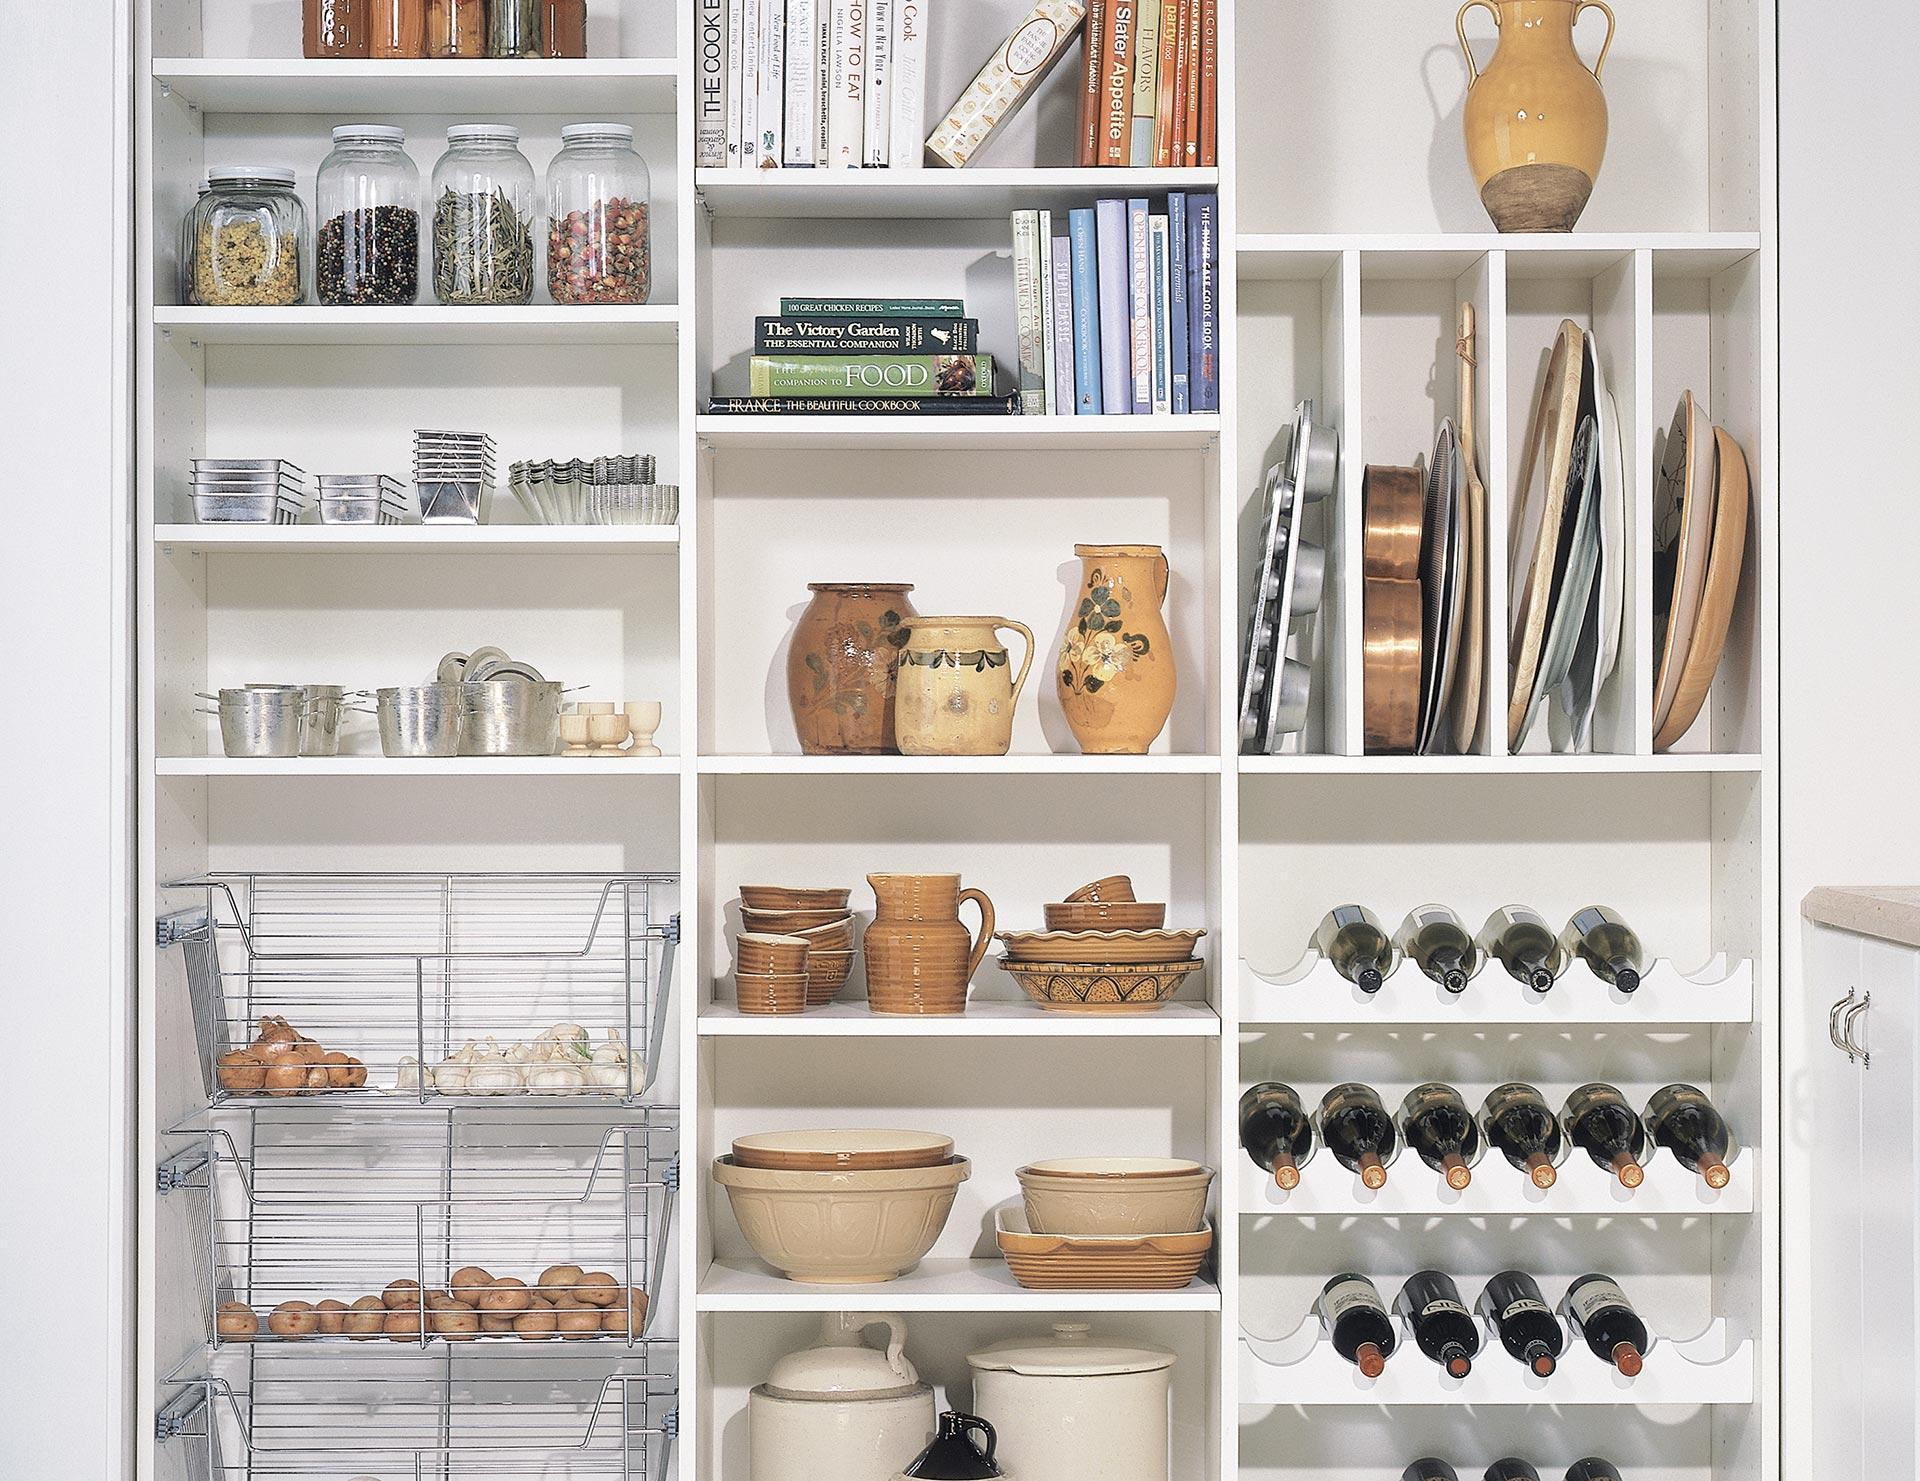 Kitchen Pantry Cabinets & Organization Ideas - California Closets